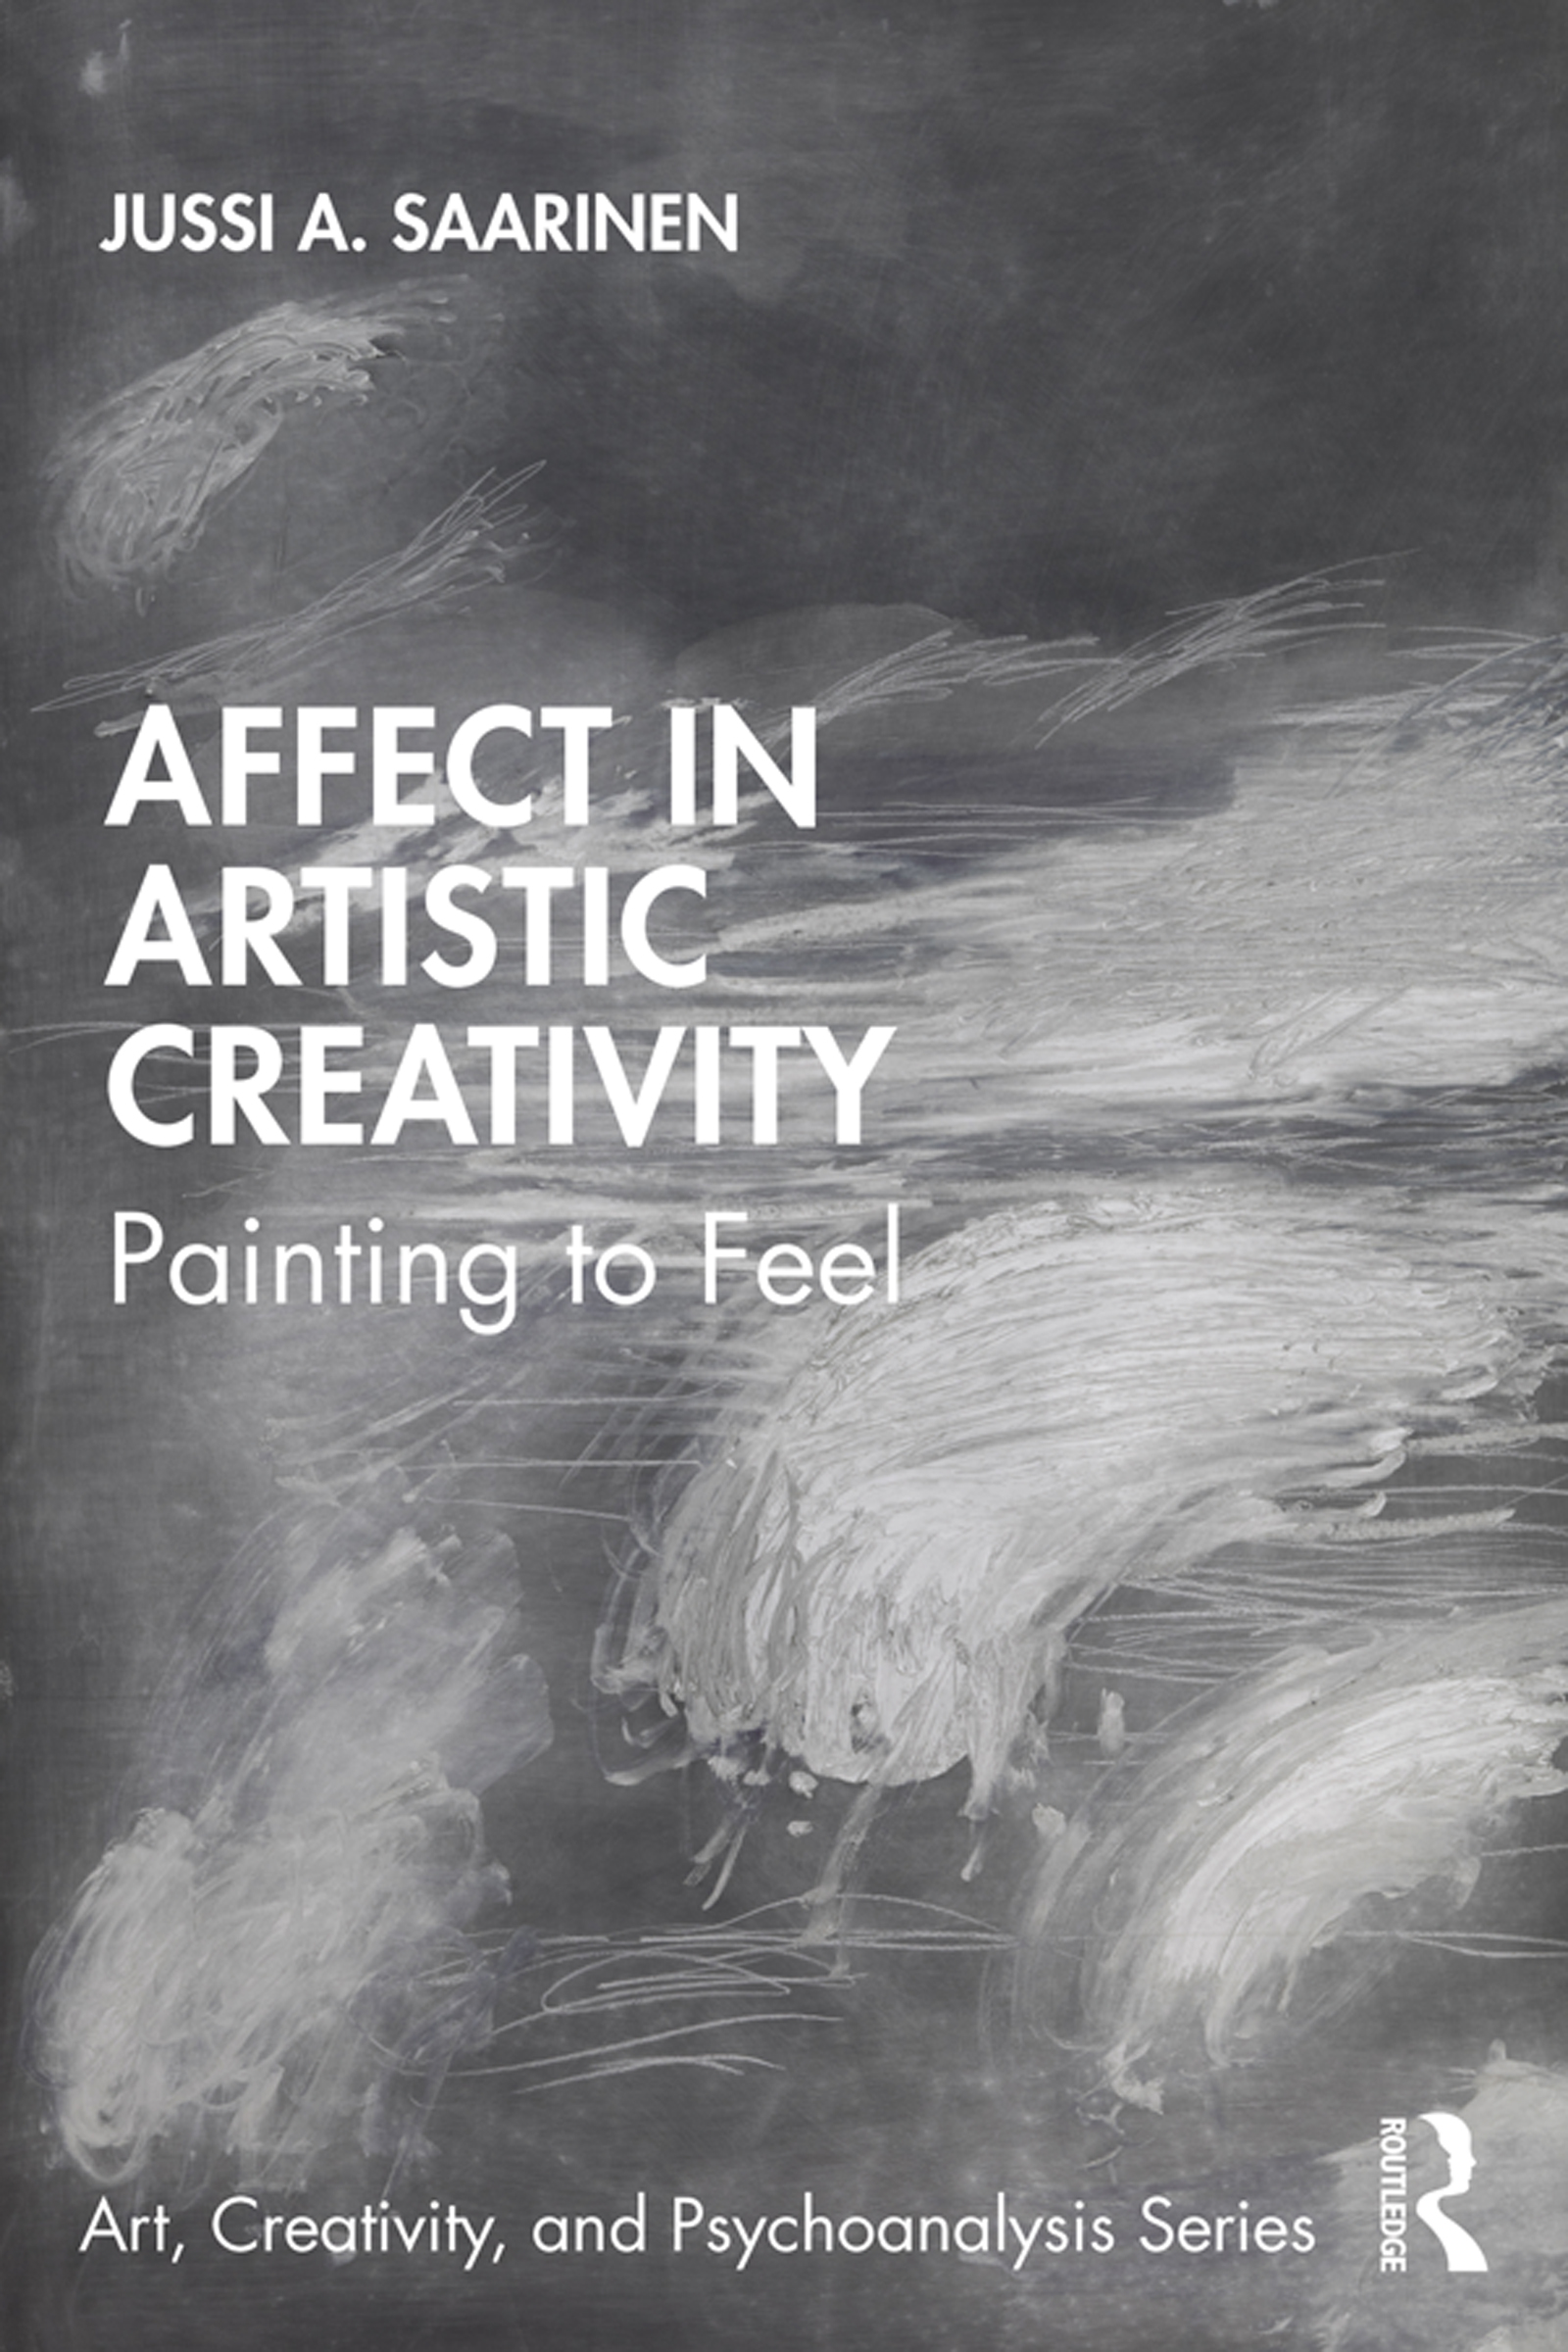 The developmental roots of creative being and painting